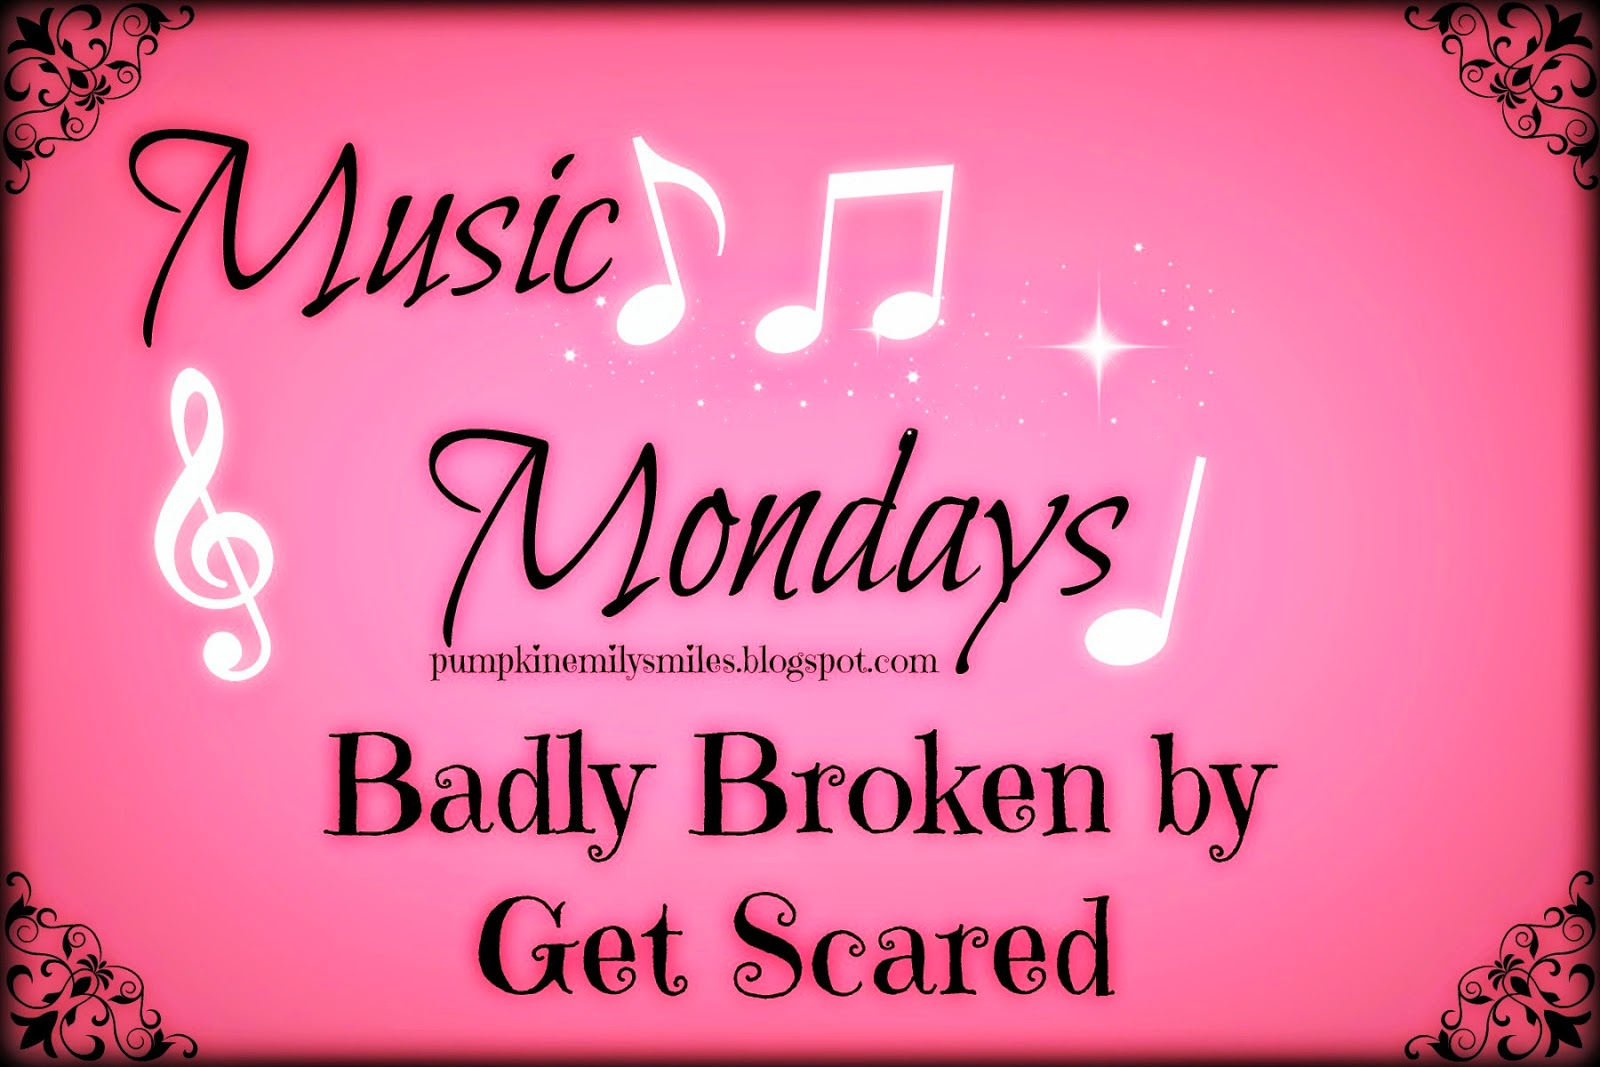 Music Mondays Badly Broken by Get Scared